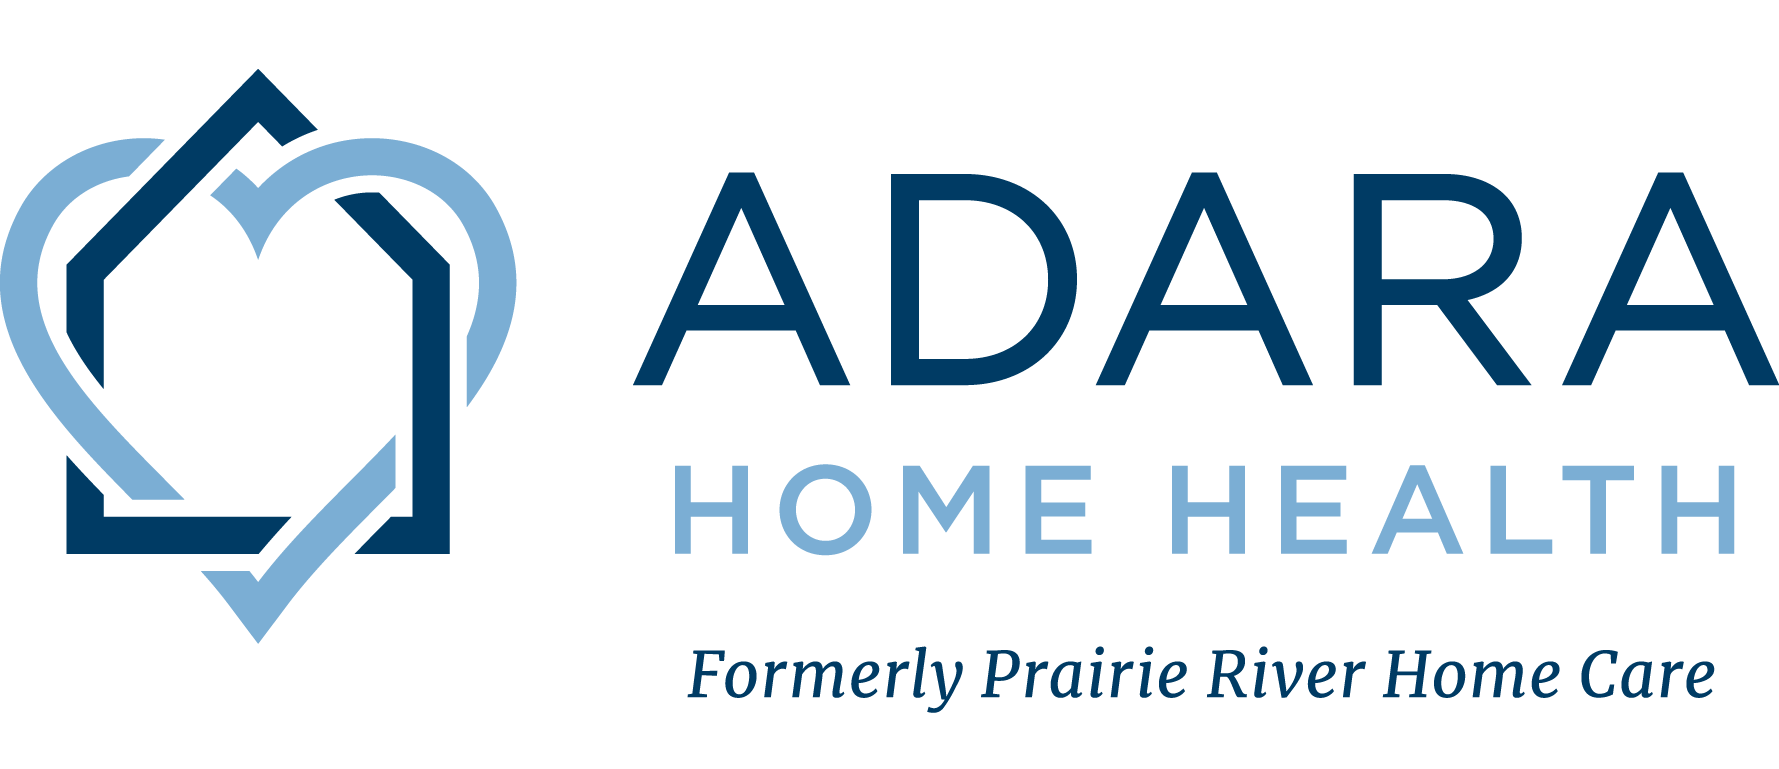 Home Health Aide Cna Job In Marshall Adara Home Health